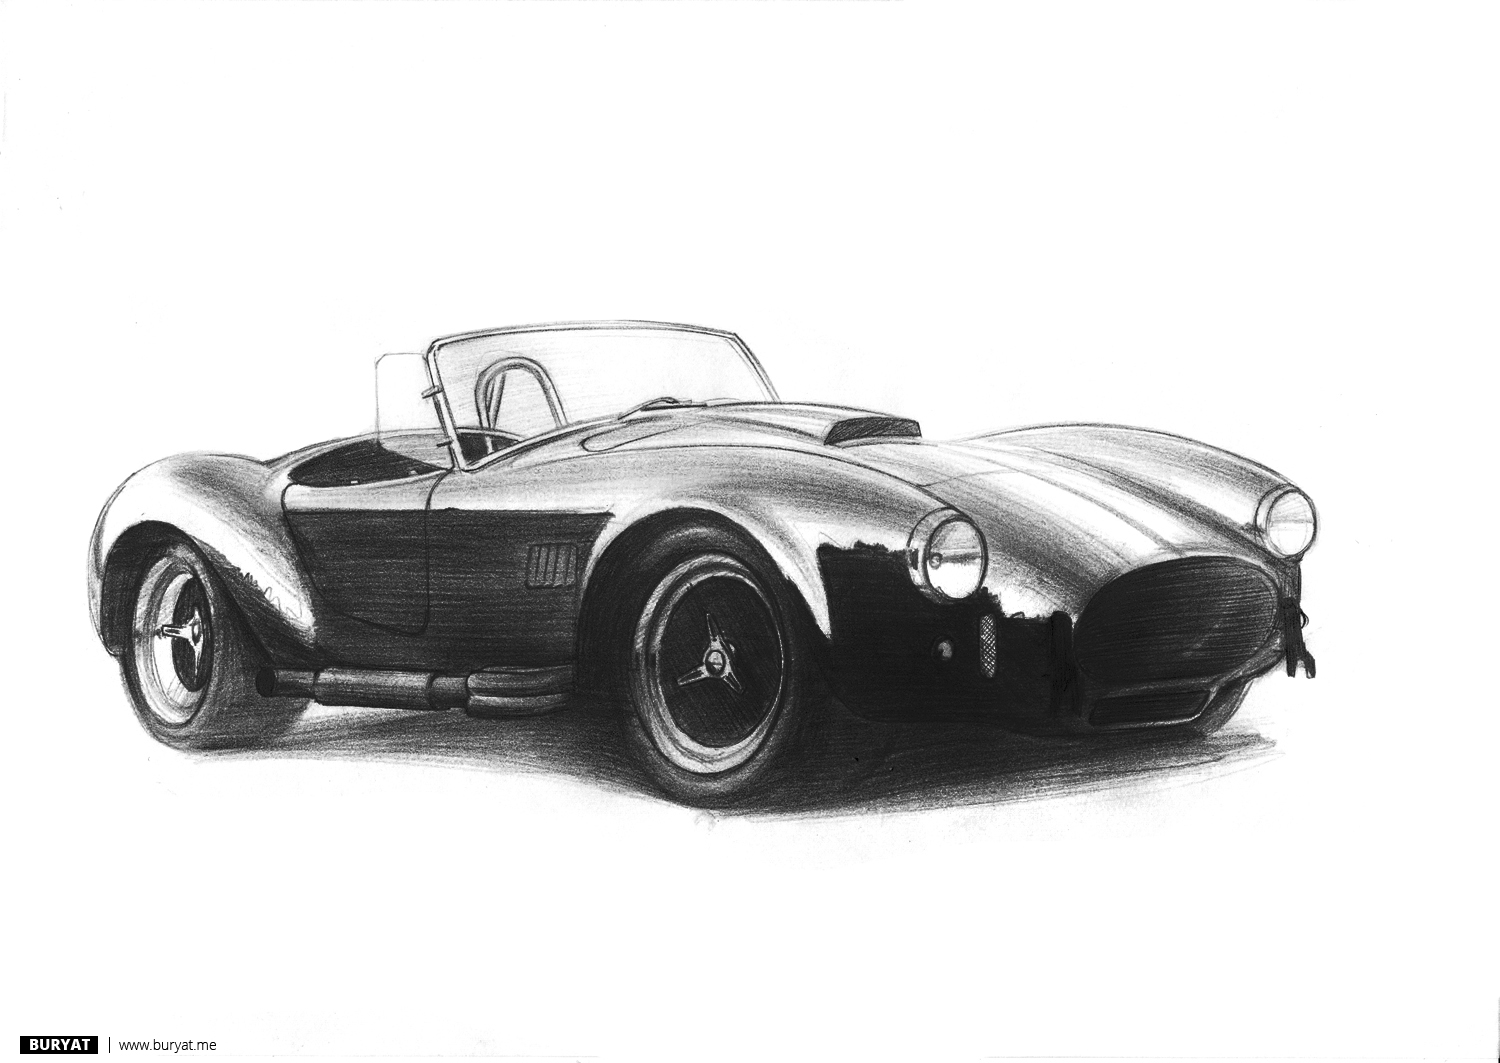 Cars Wallpaper  Dudaite  ideas about car drawings on pinterest how to draw cars 1500x1063